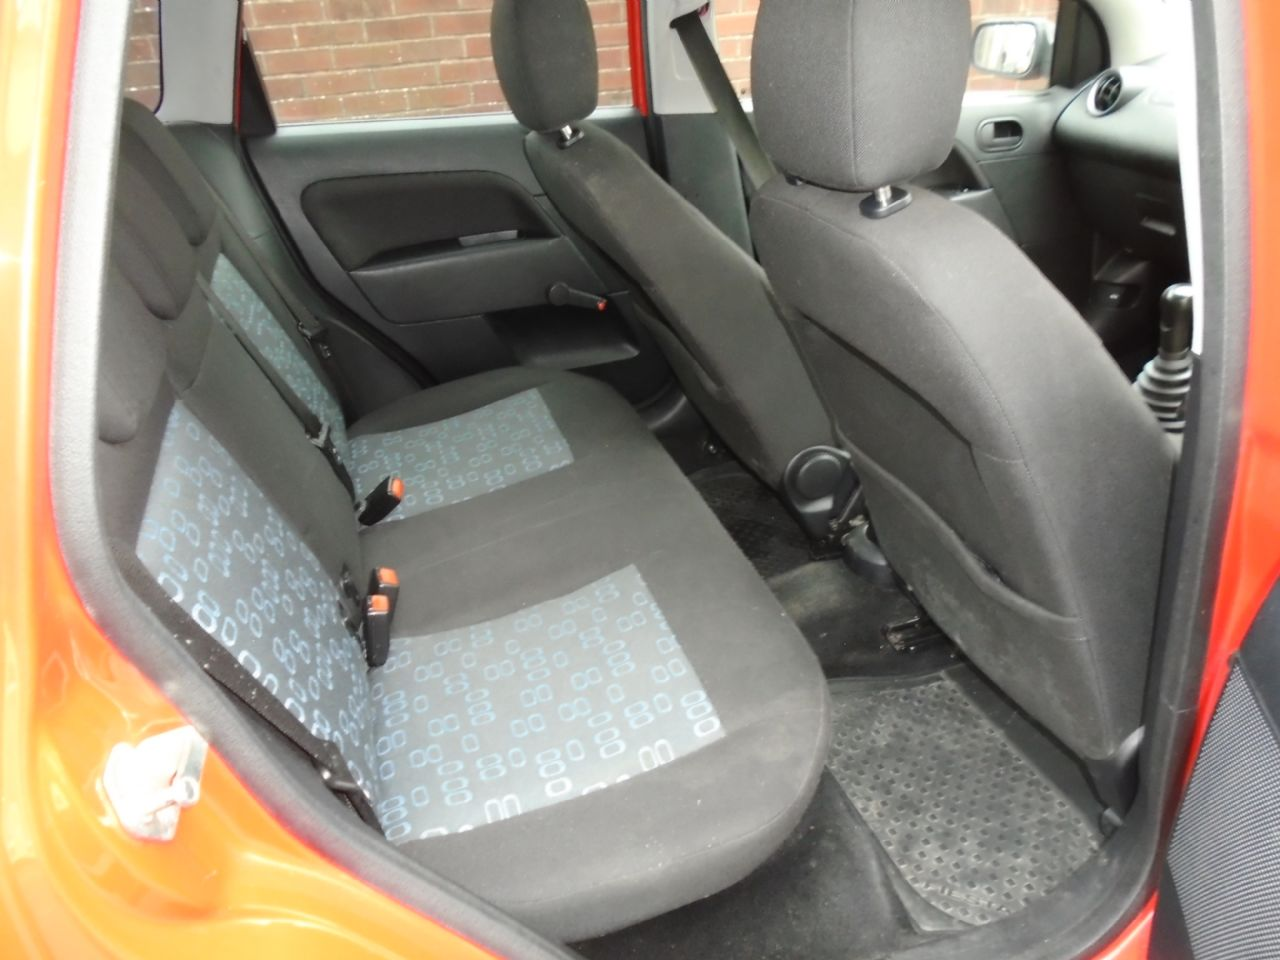 FORD FIESTA 1.4i 16v LX A/C - Picture 6